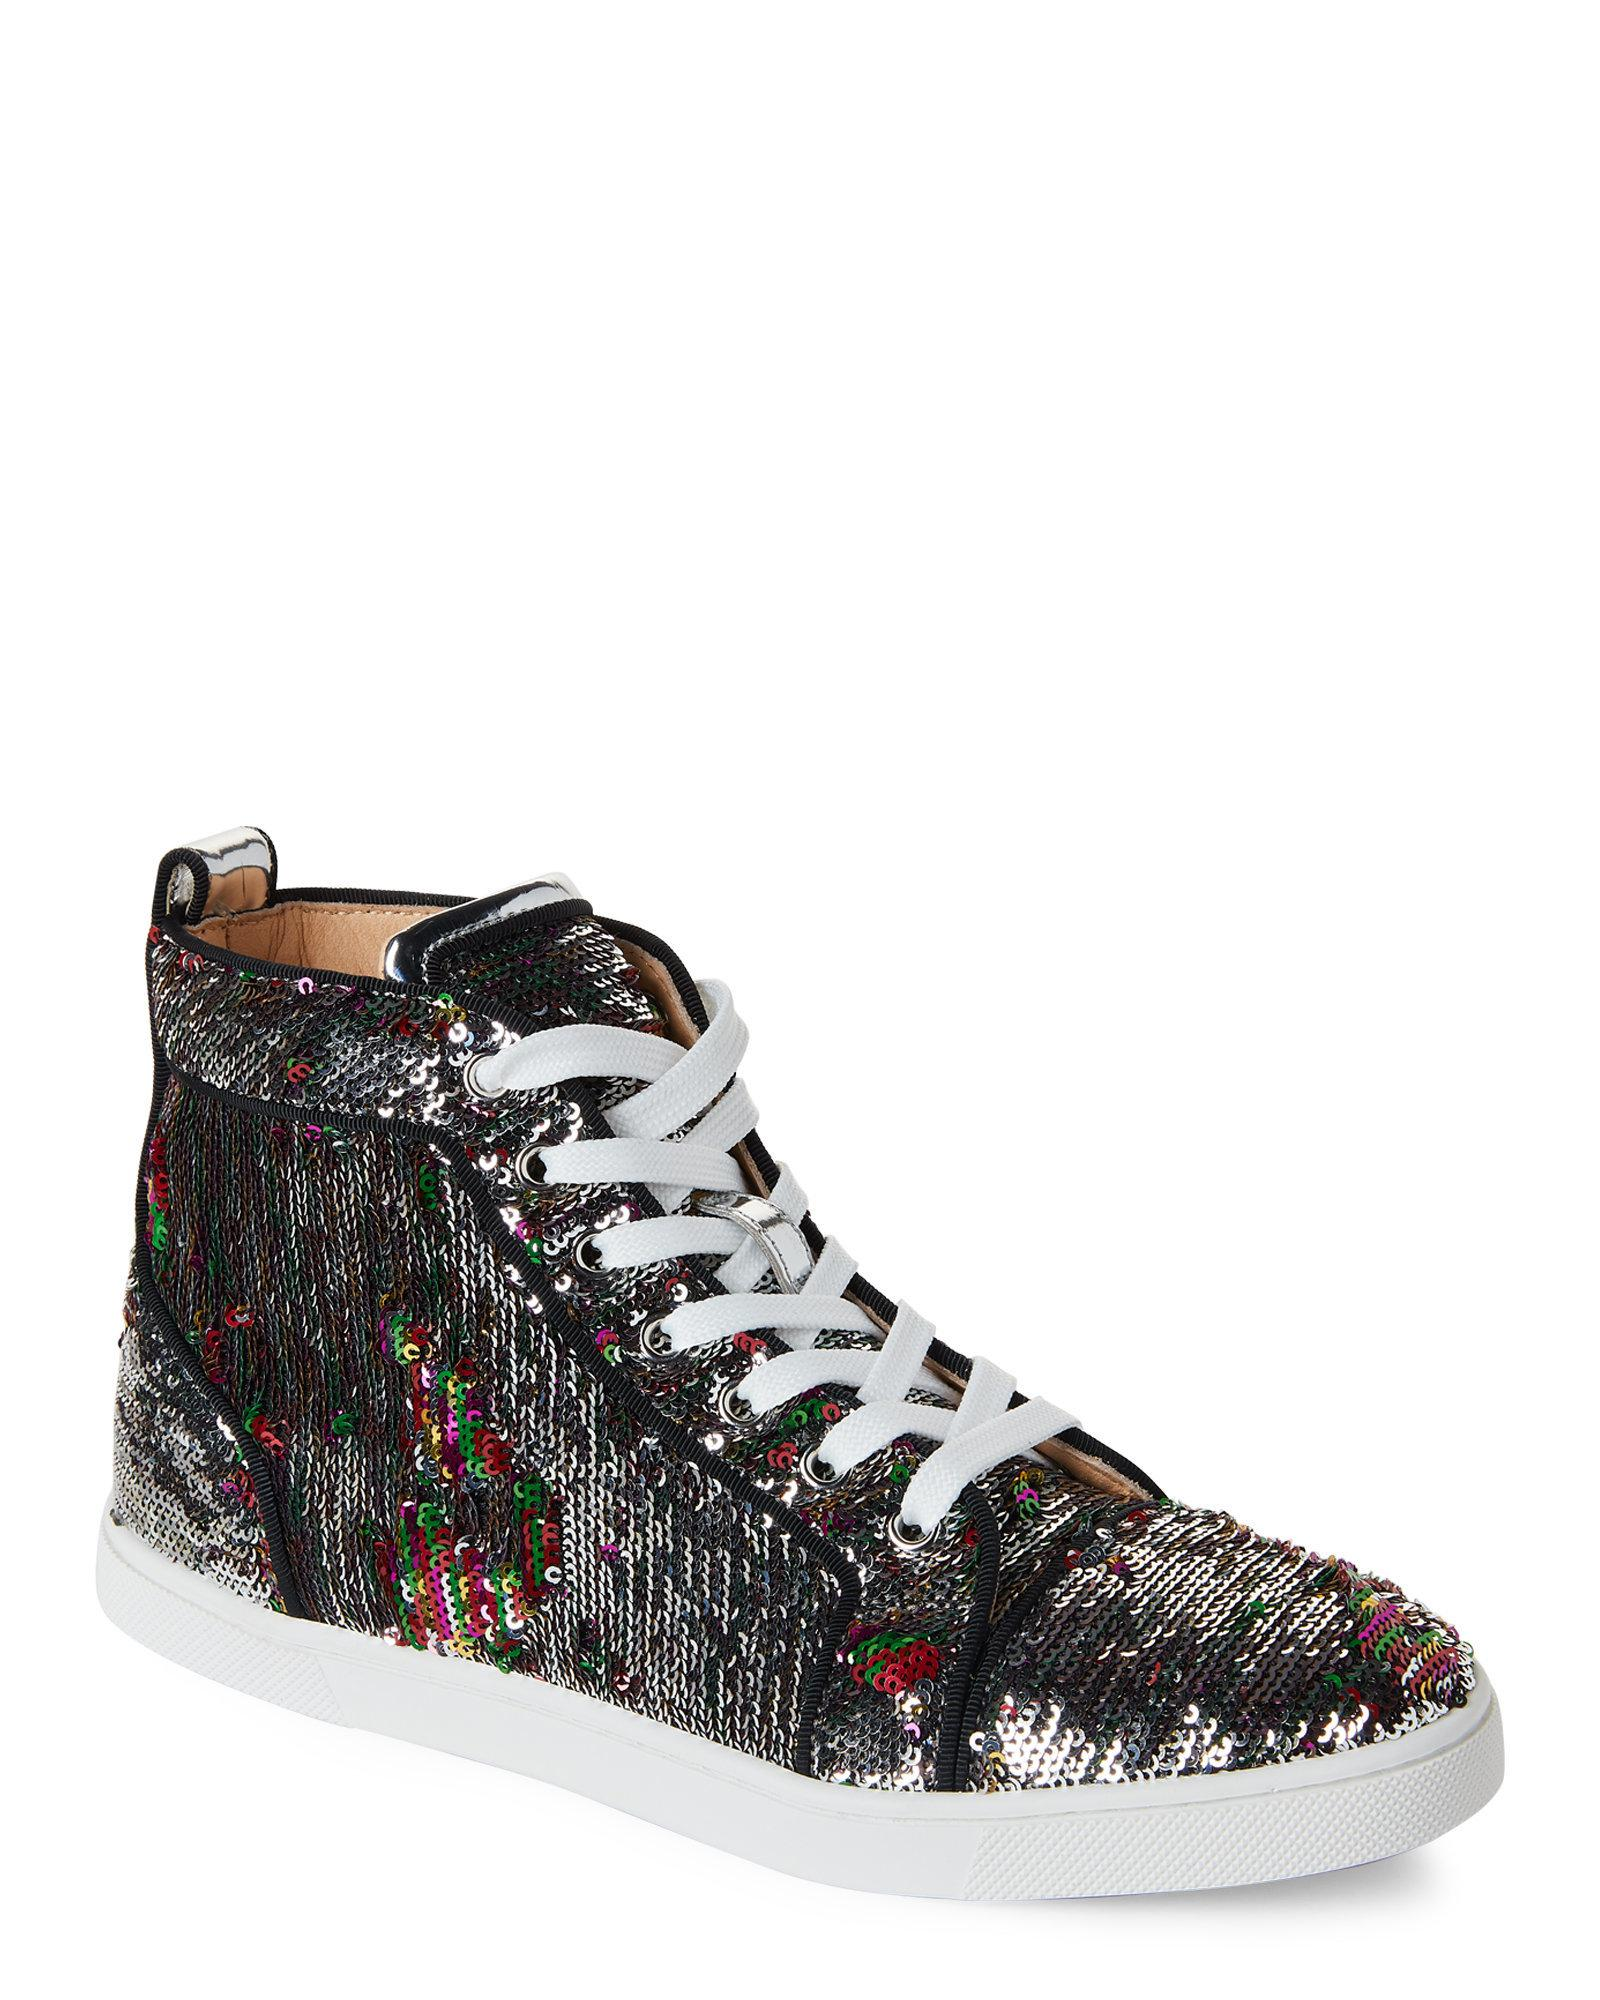 82a46d3ebbf Lyst - Christian Louboutin Bip Bop High-top Sequin Sneakers in Black